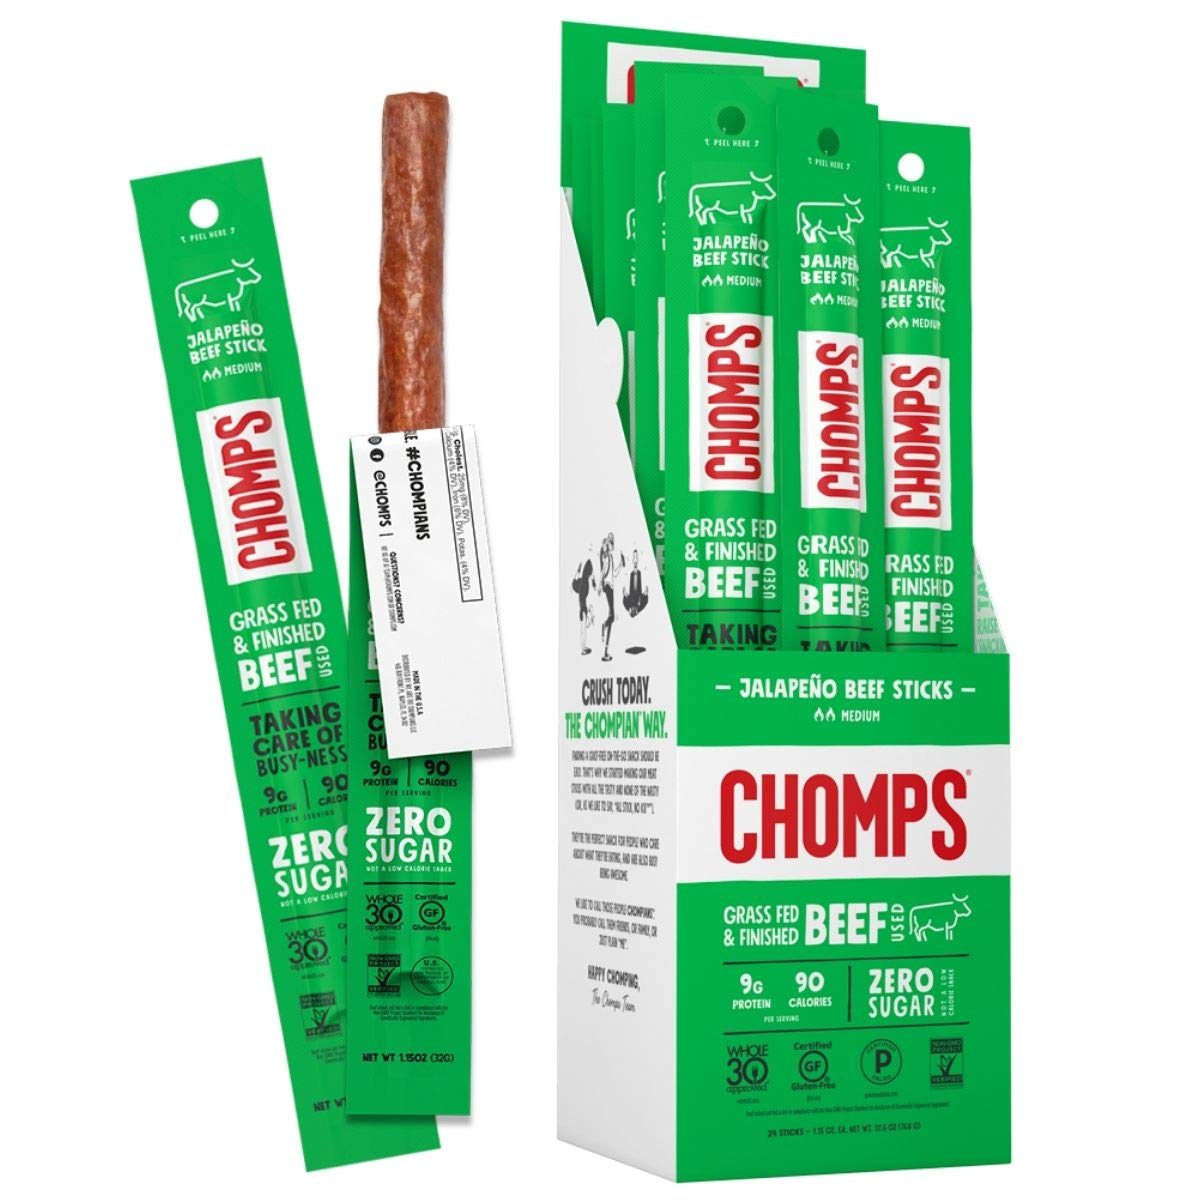 CHOMPS Grass Fed Jalapeño Beef Jerky Snack Sticks, Keto & Paleo, Whole30 Approved, Non-GMO, Gluten Free, Sugar Free, Nitrate Free, Low Carb, 90 Calorie Snacks, 1.15 Oz Meat Stick, Pack of 24